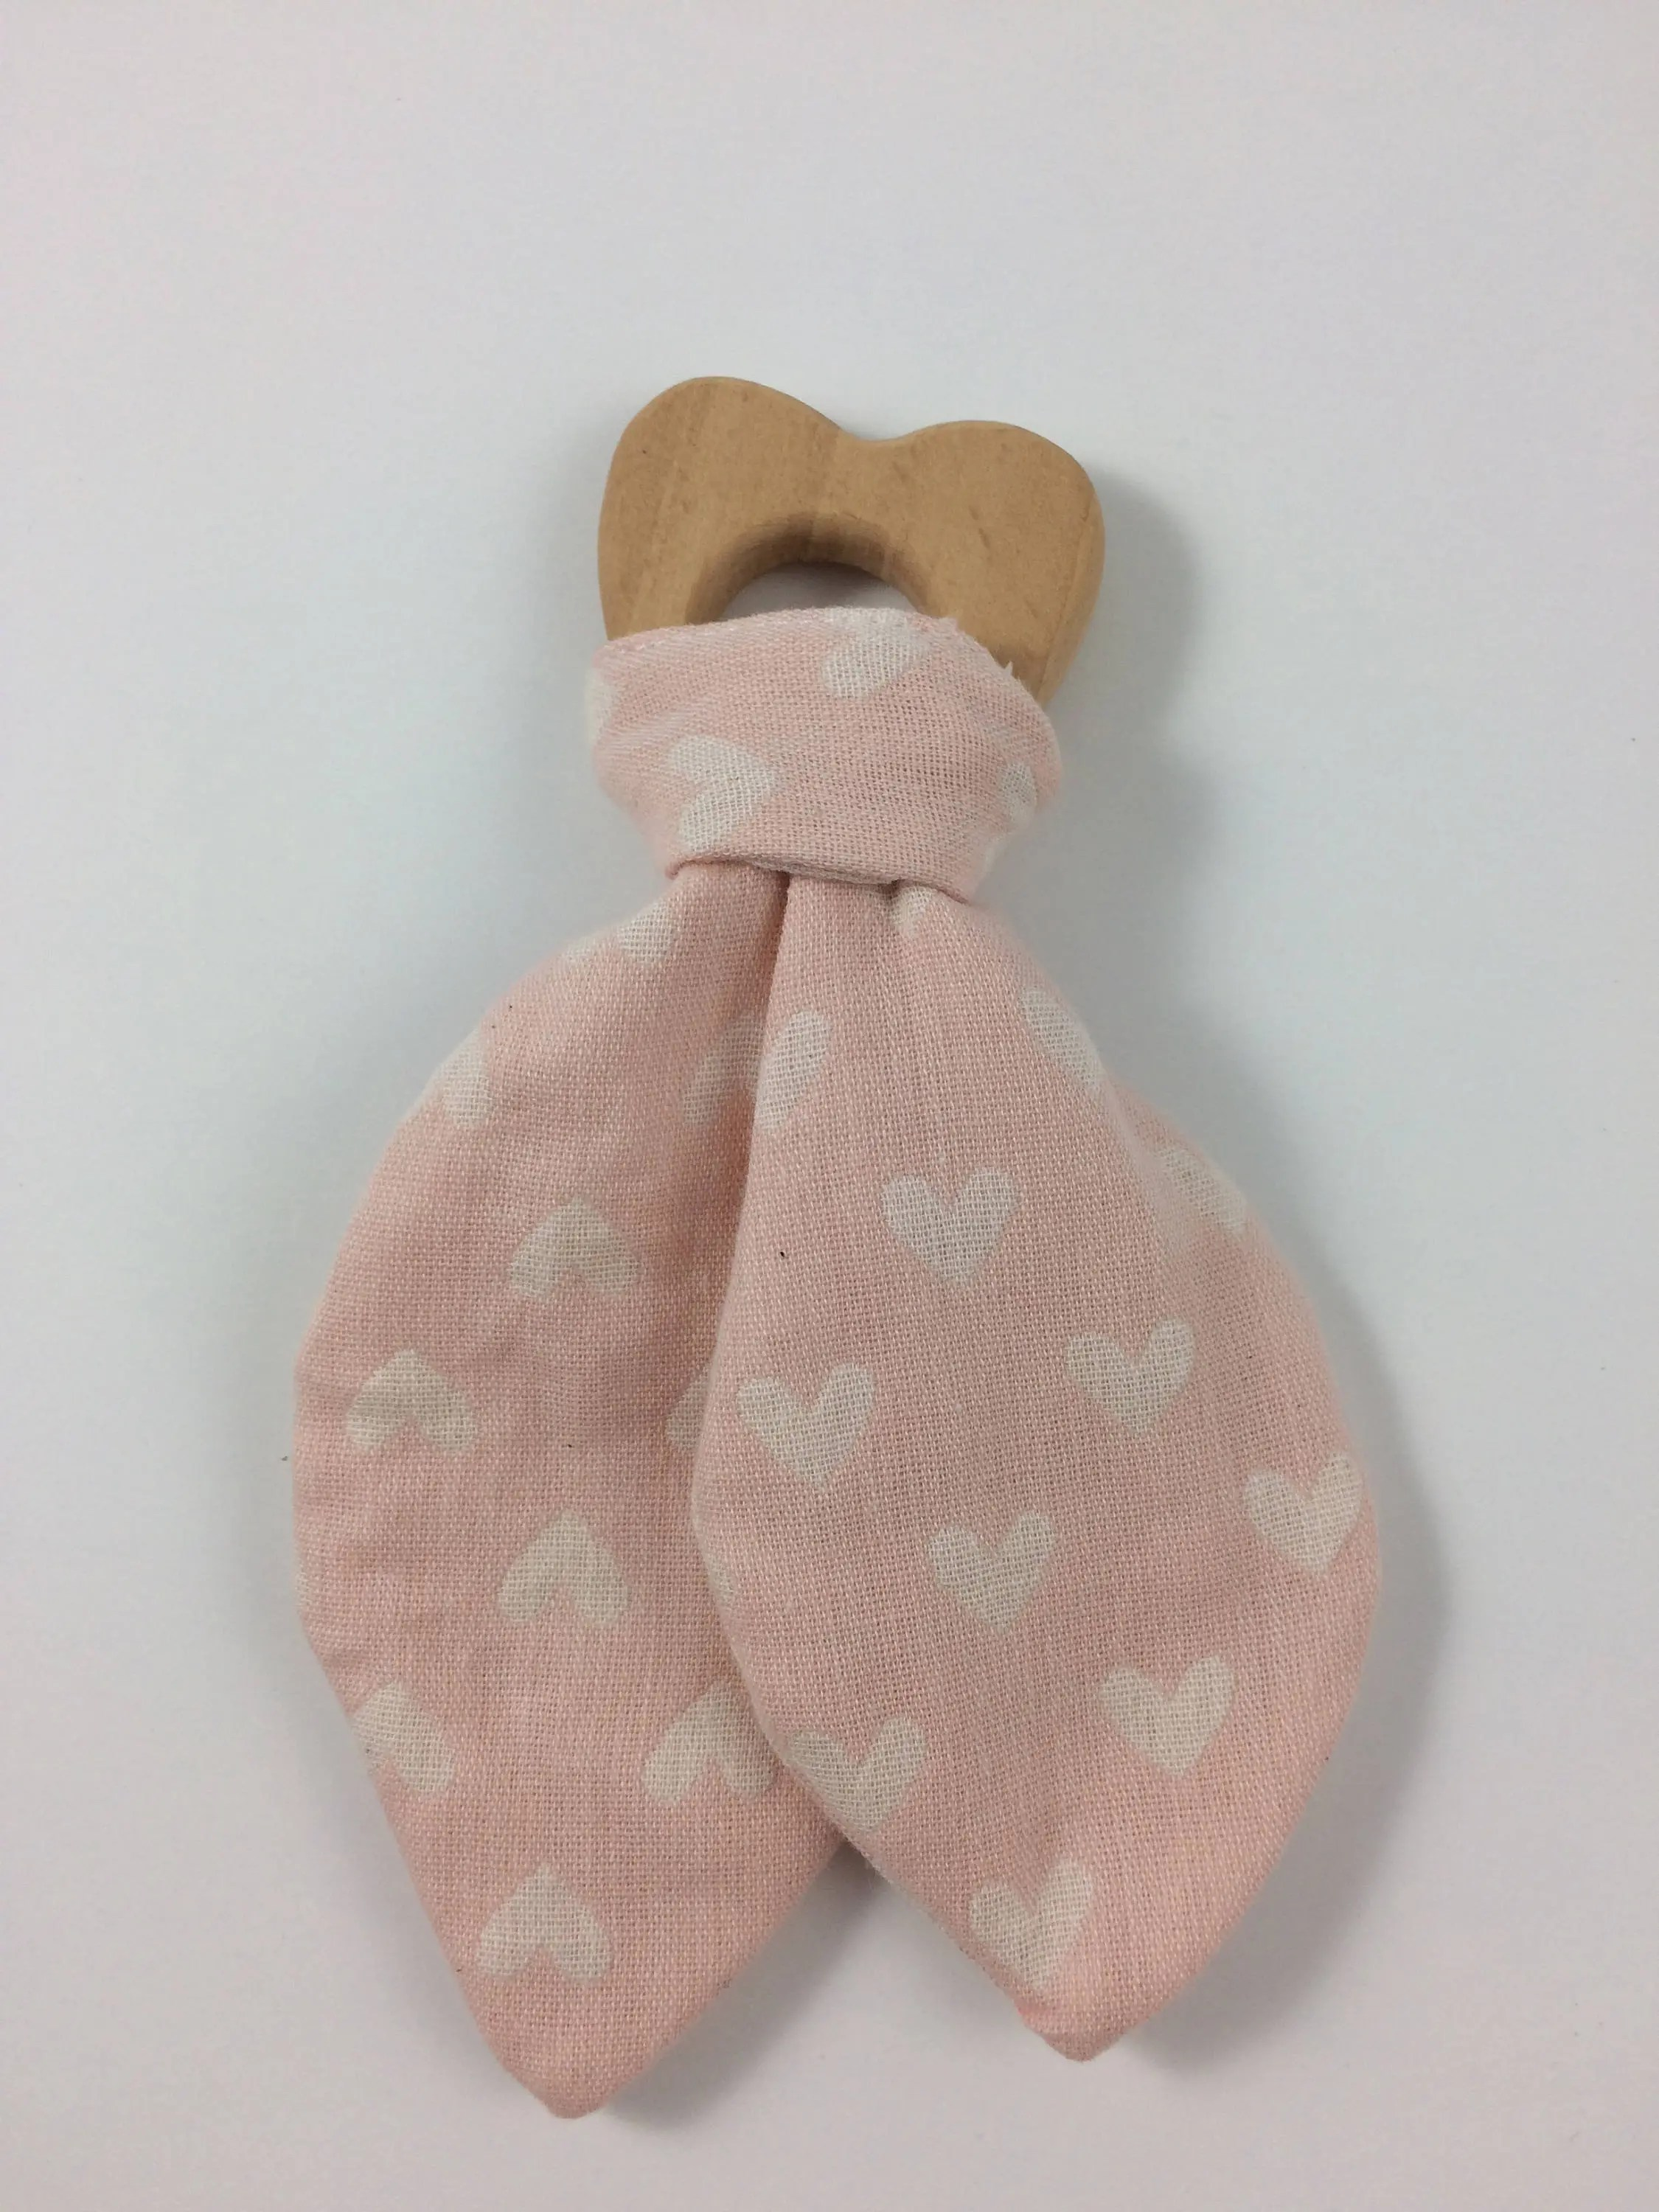 Heart Wooden teether image 1